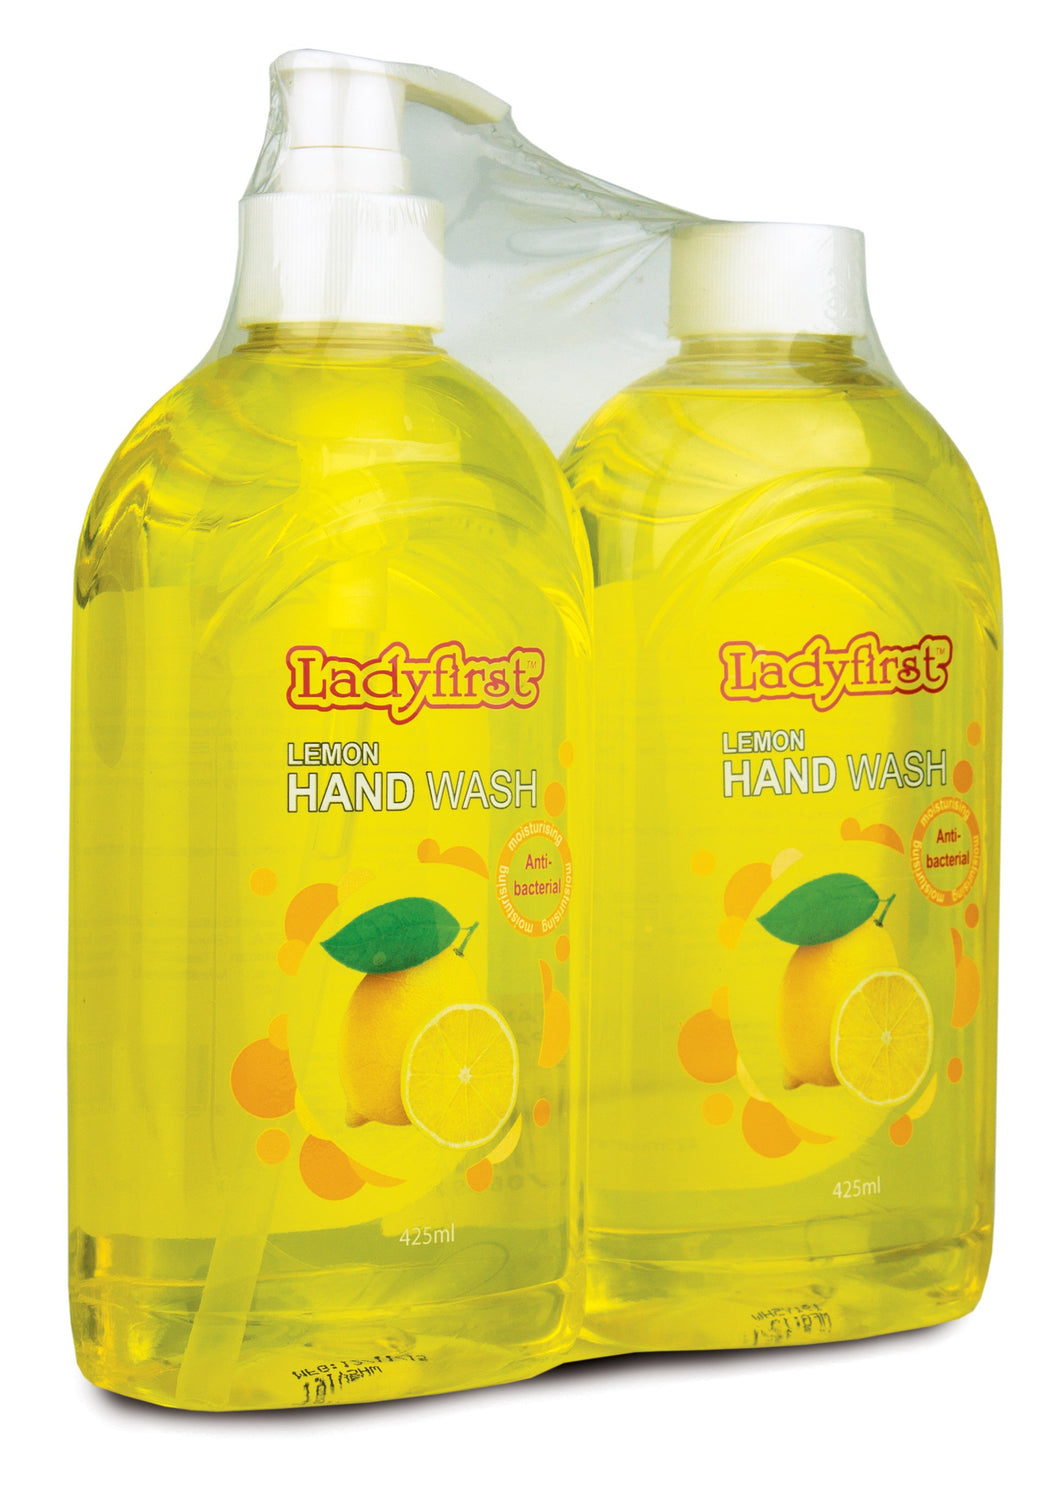 Ladyfirst Handwash Lemon Twin Pack